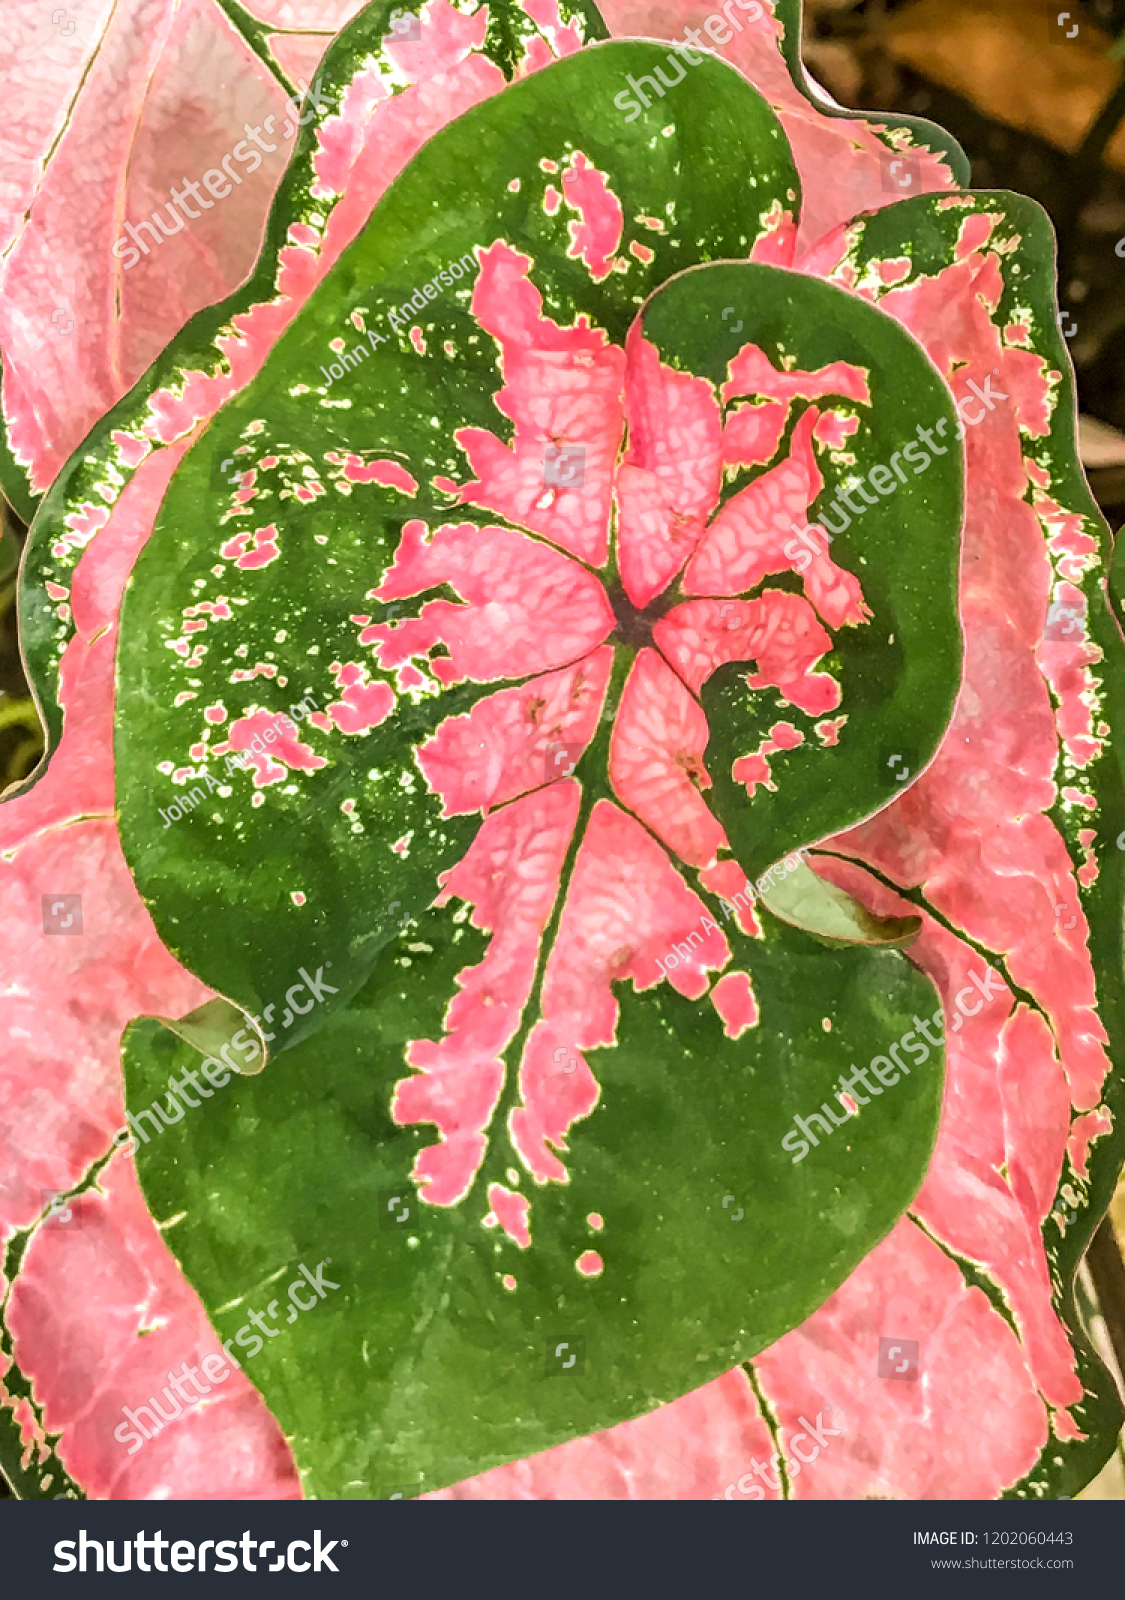 Dwarf Caladium Images Stock Photos Vectors Shutterstock